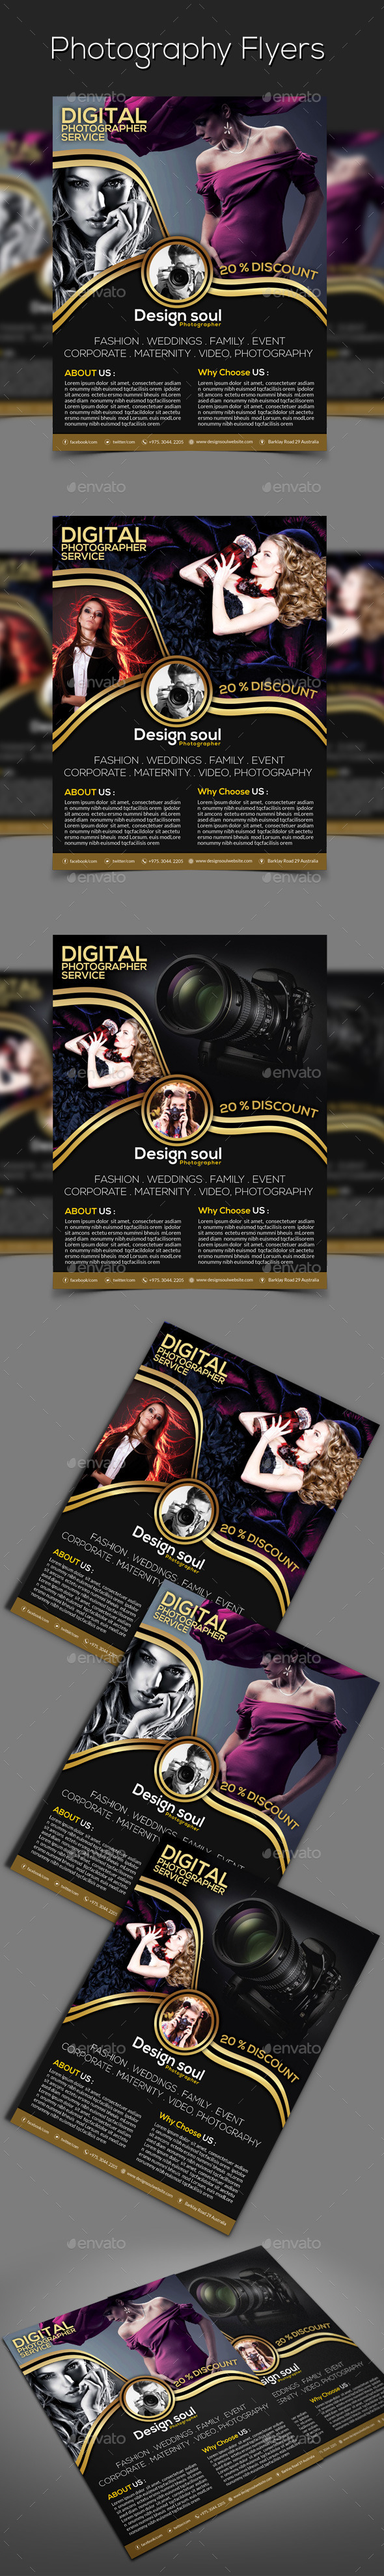 Photography Flyers - Corporate Flyers